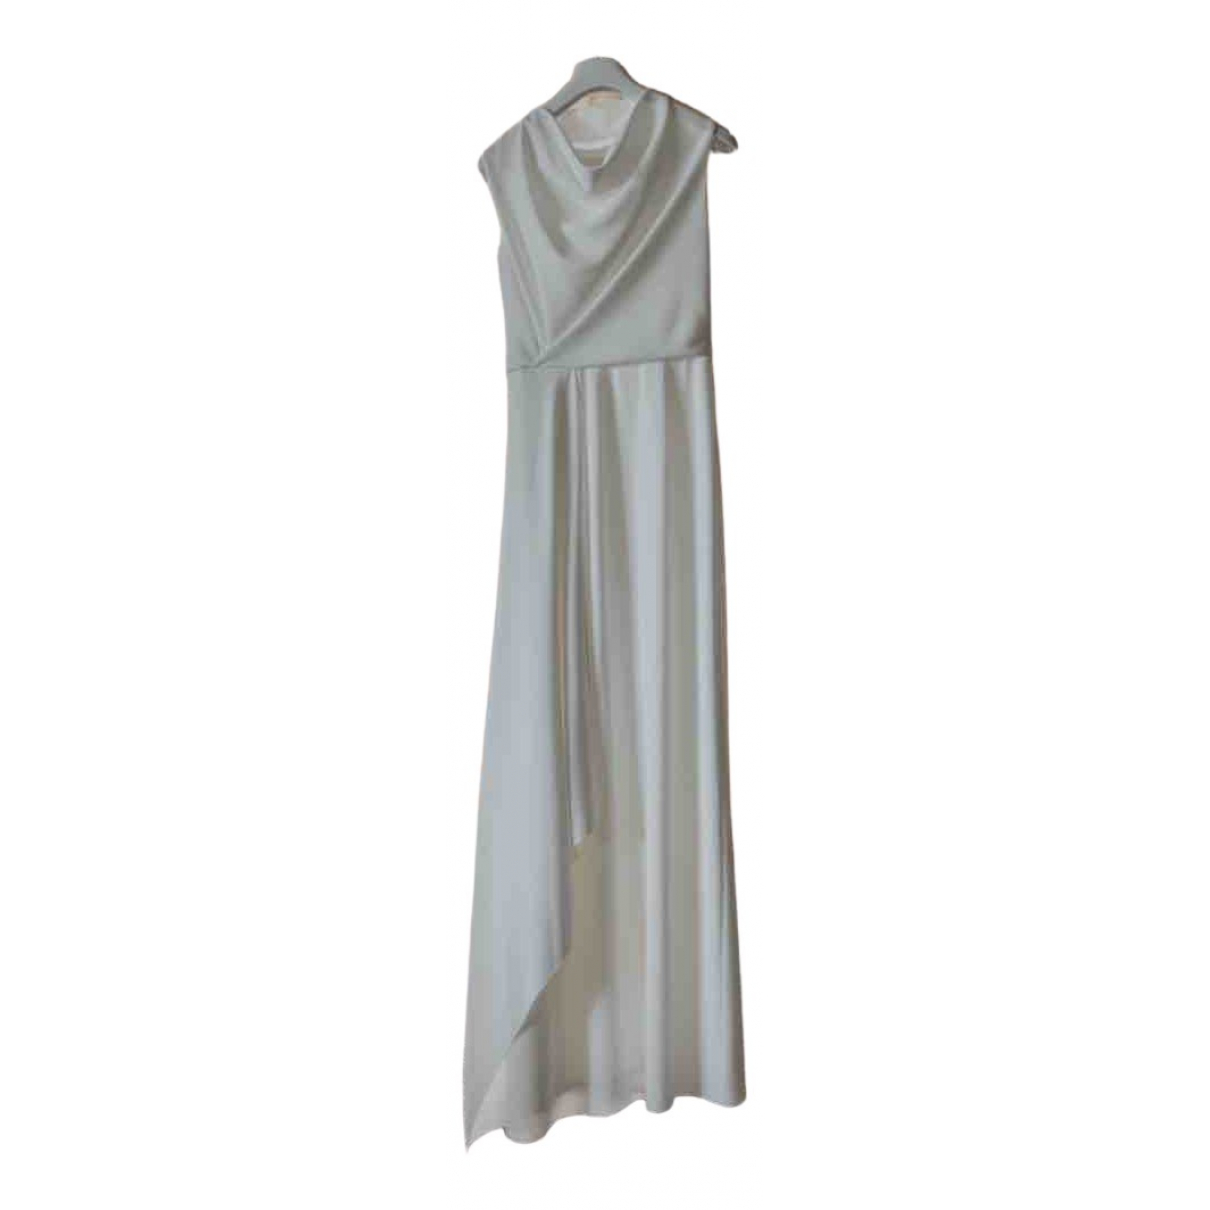 Max Mara N White dress for Women 42 IT